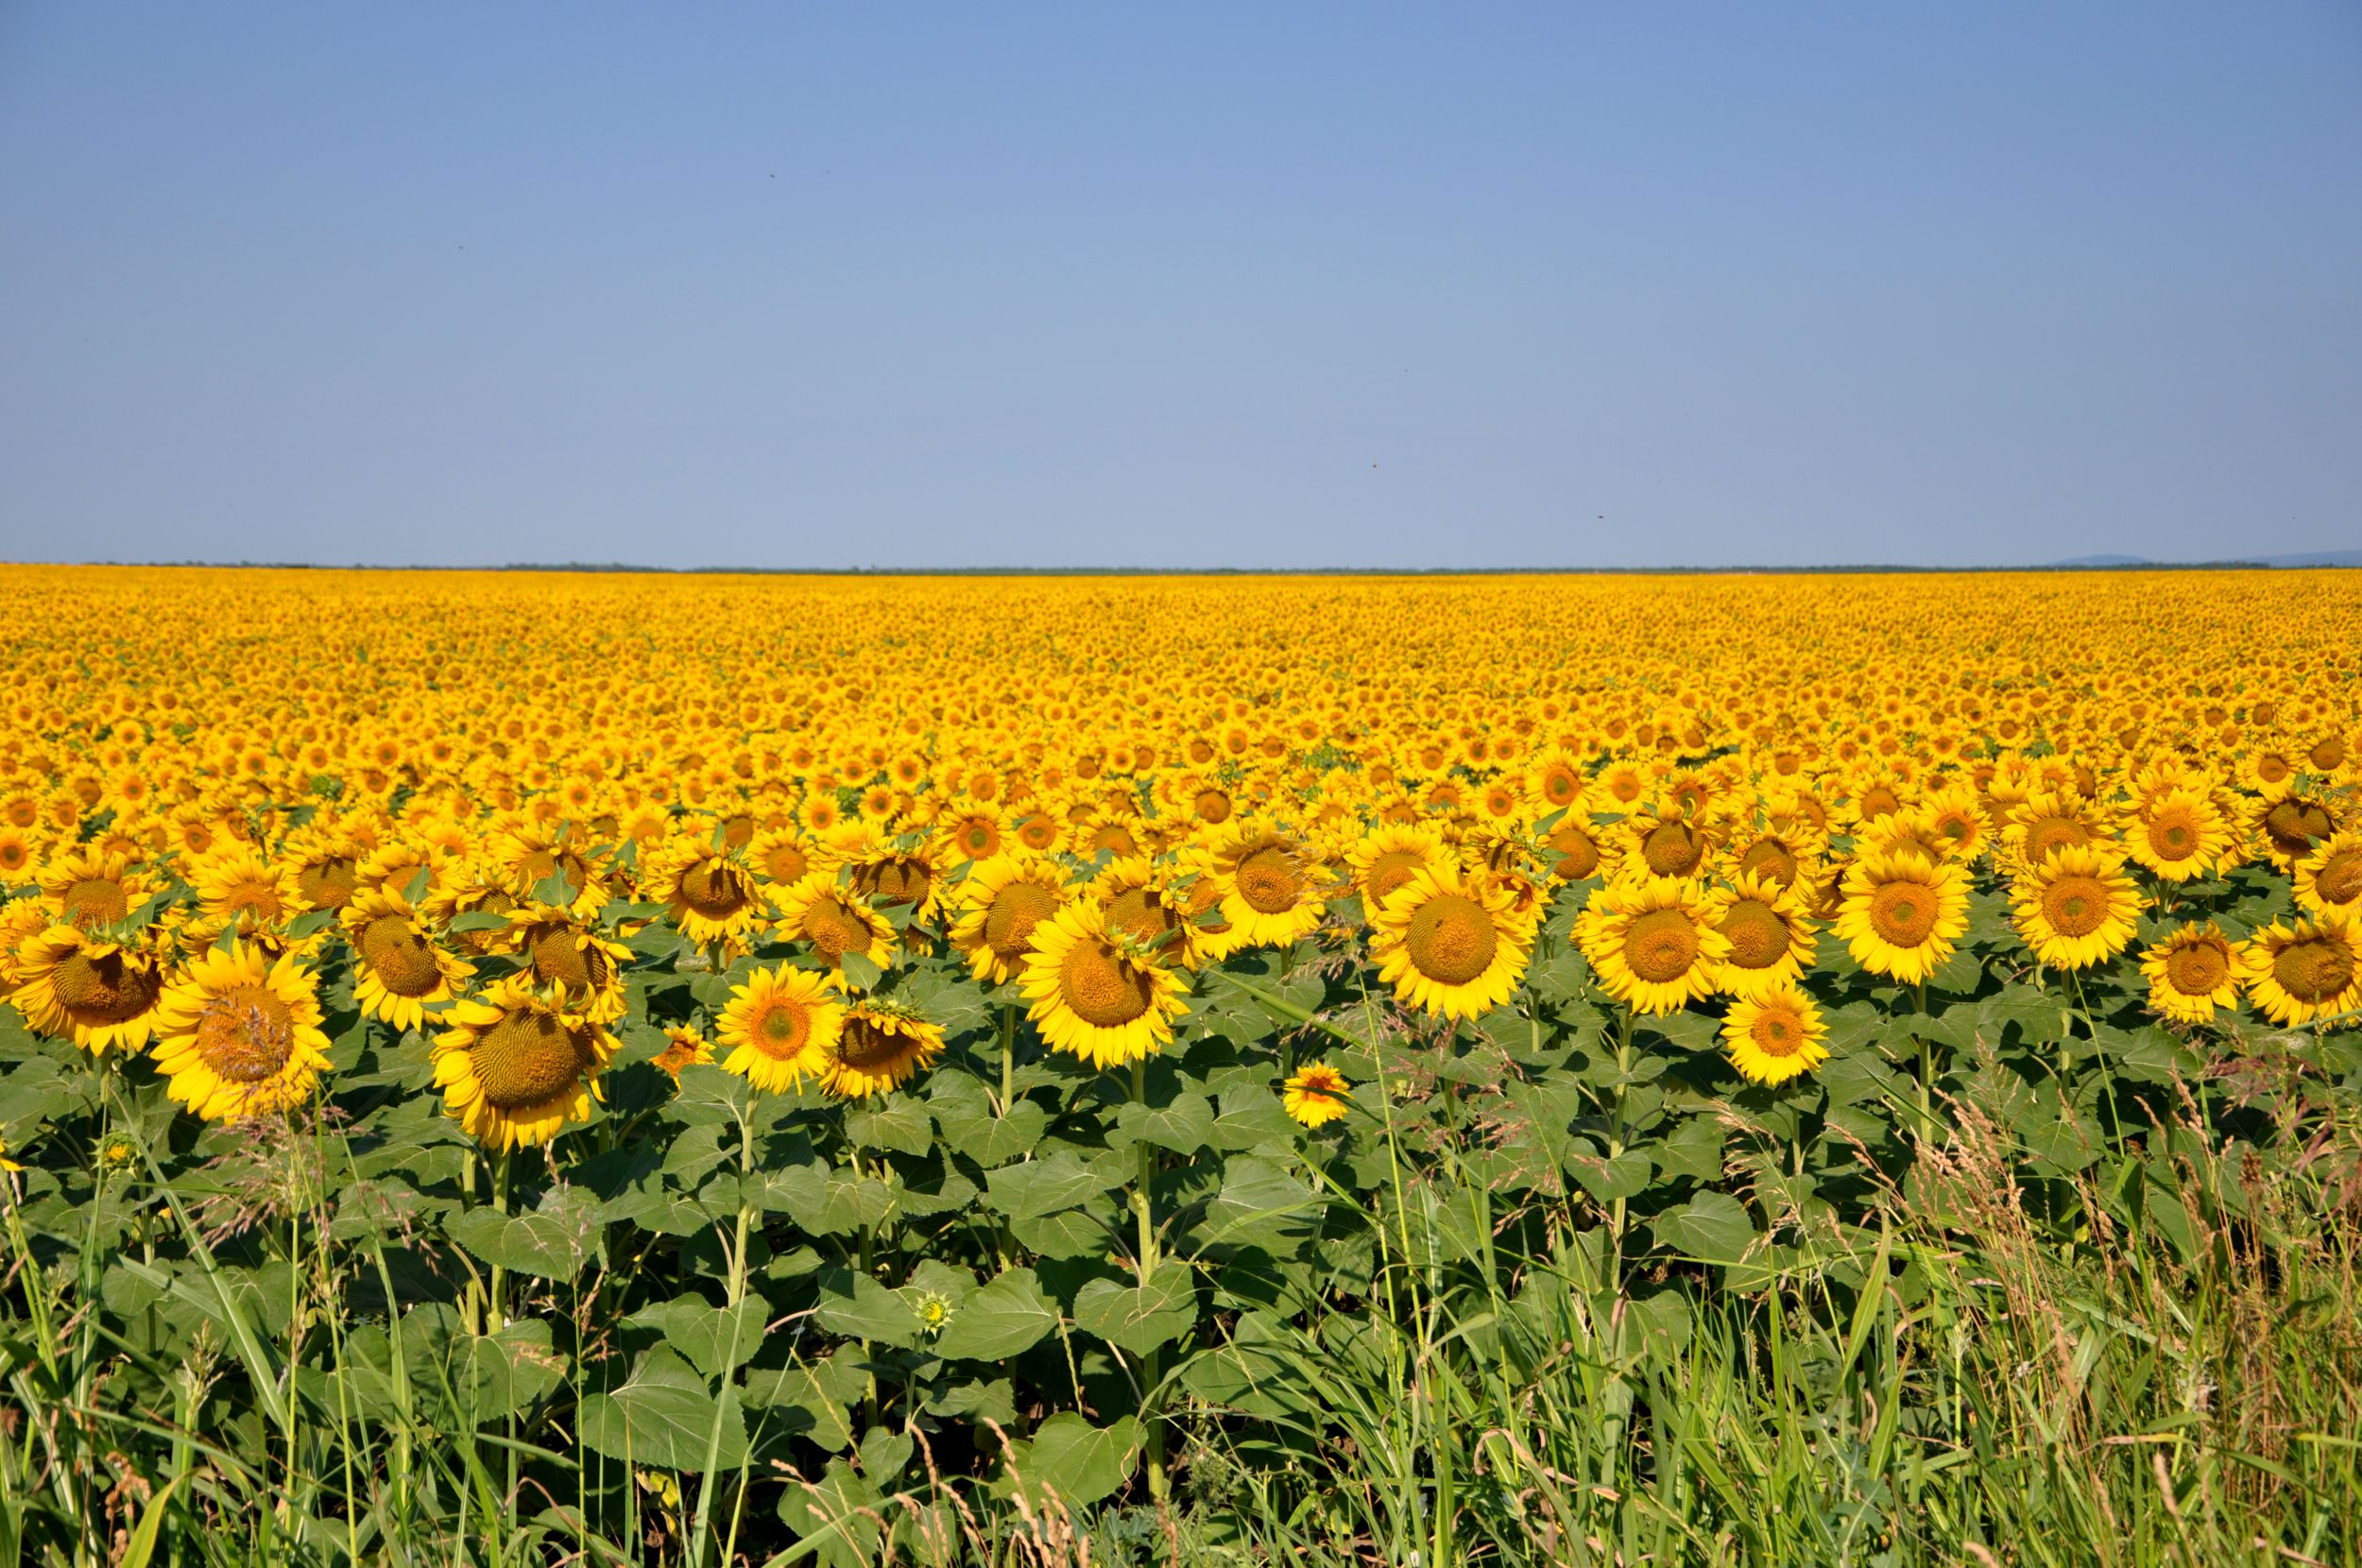 #Serbia, #Srbija, Highway through the Sunflower fields near Beska in Vojvodina province, Serbia - So beautiful I couldn't resist to stop and make a photo...